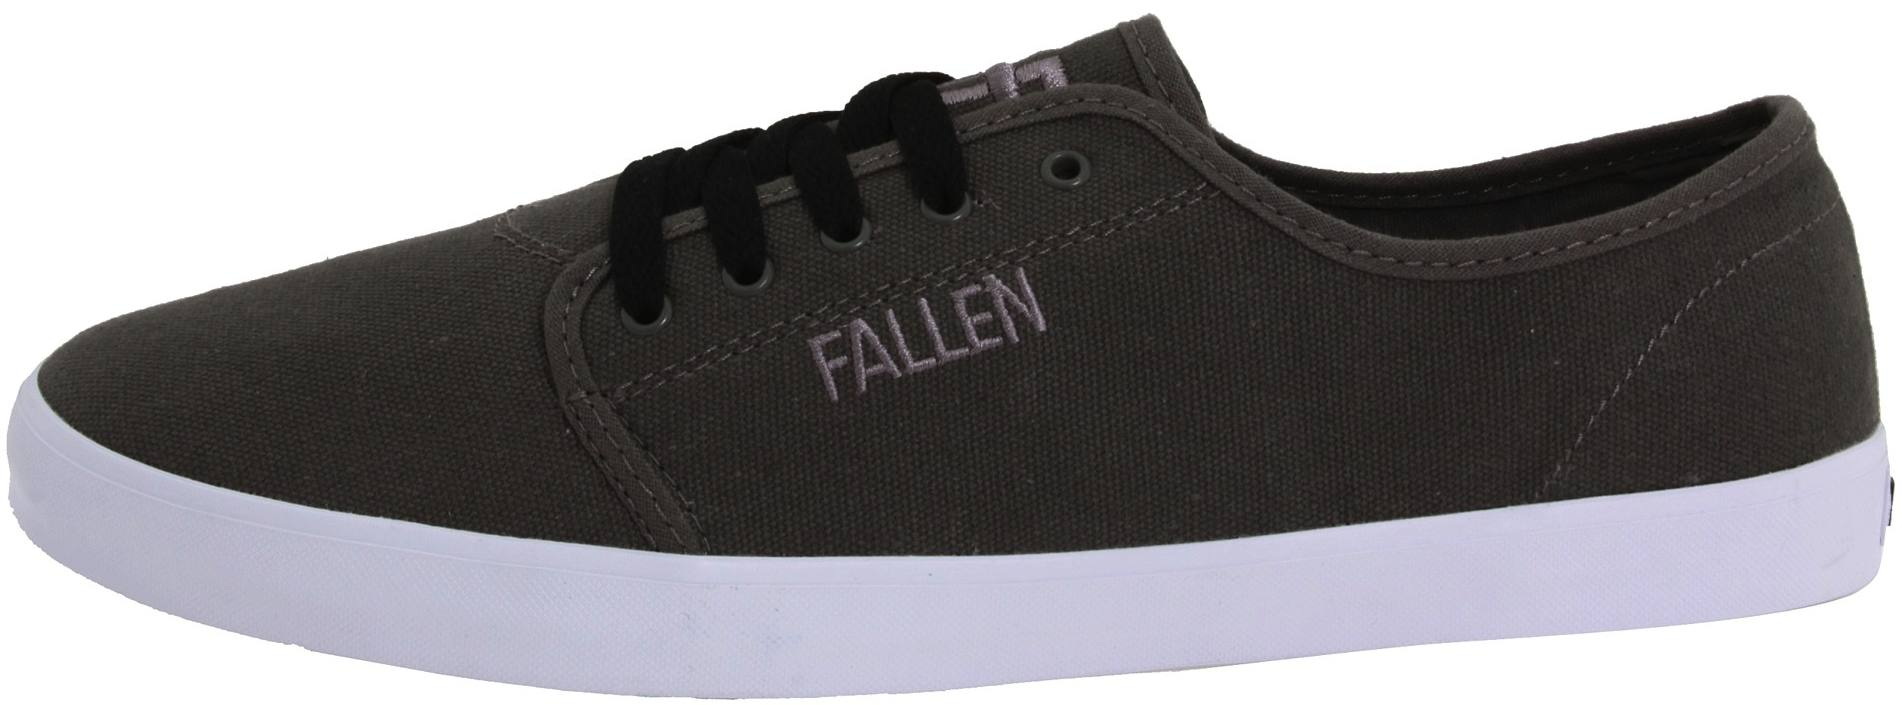 Fallen Daze Vegan skateboard shoes